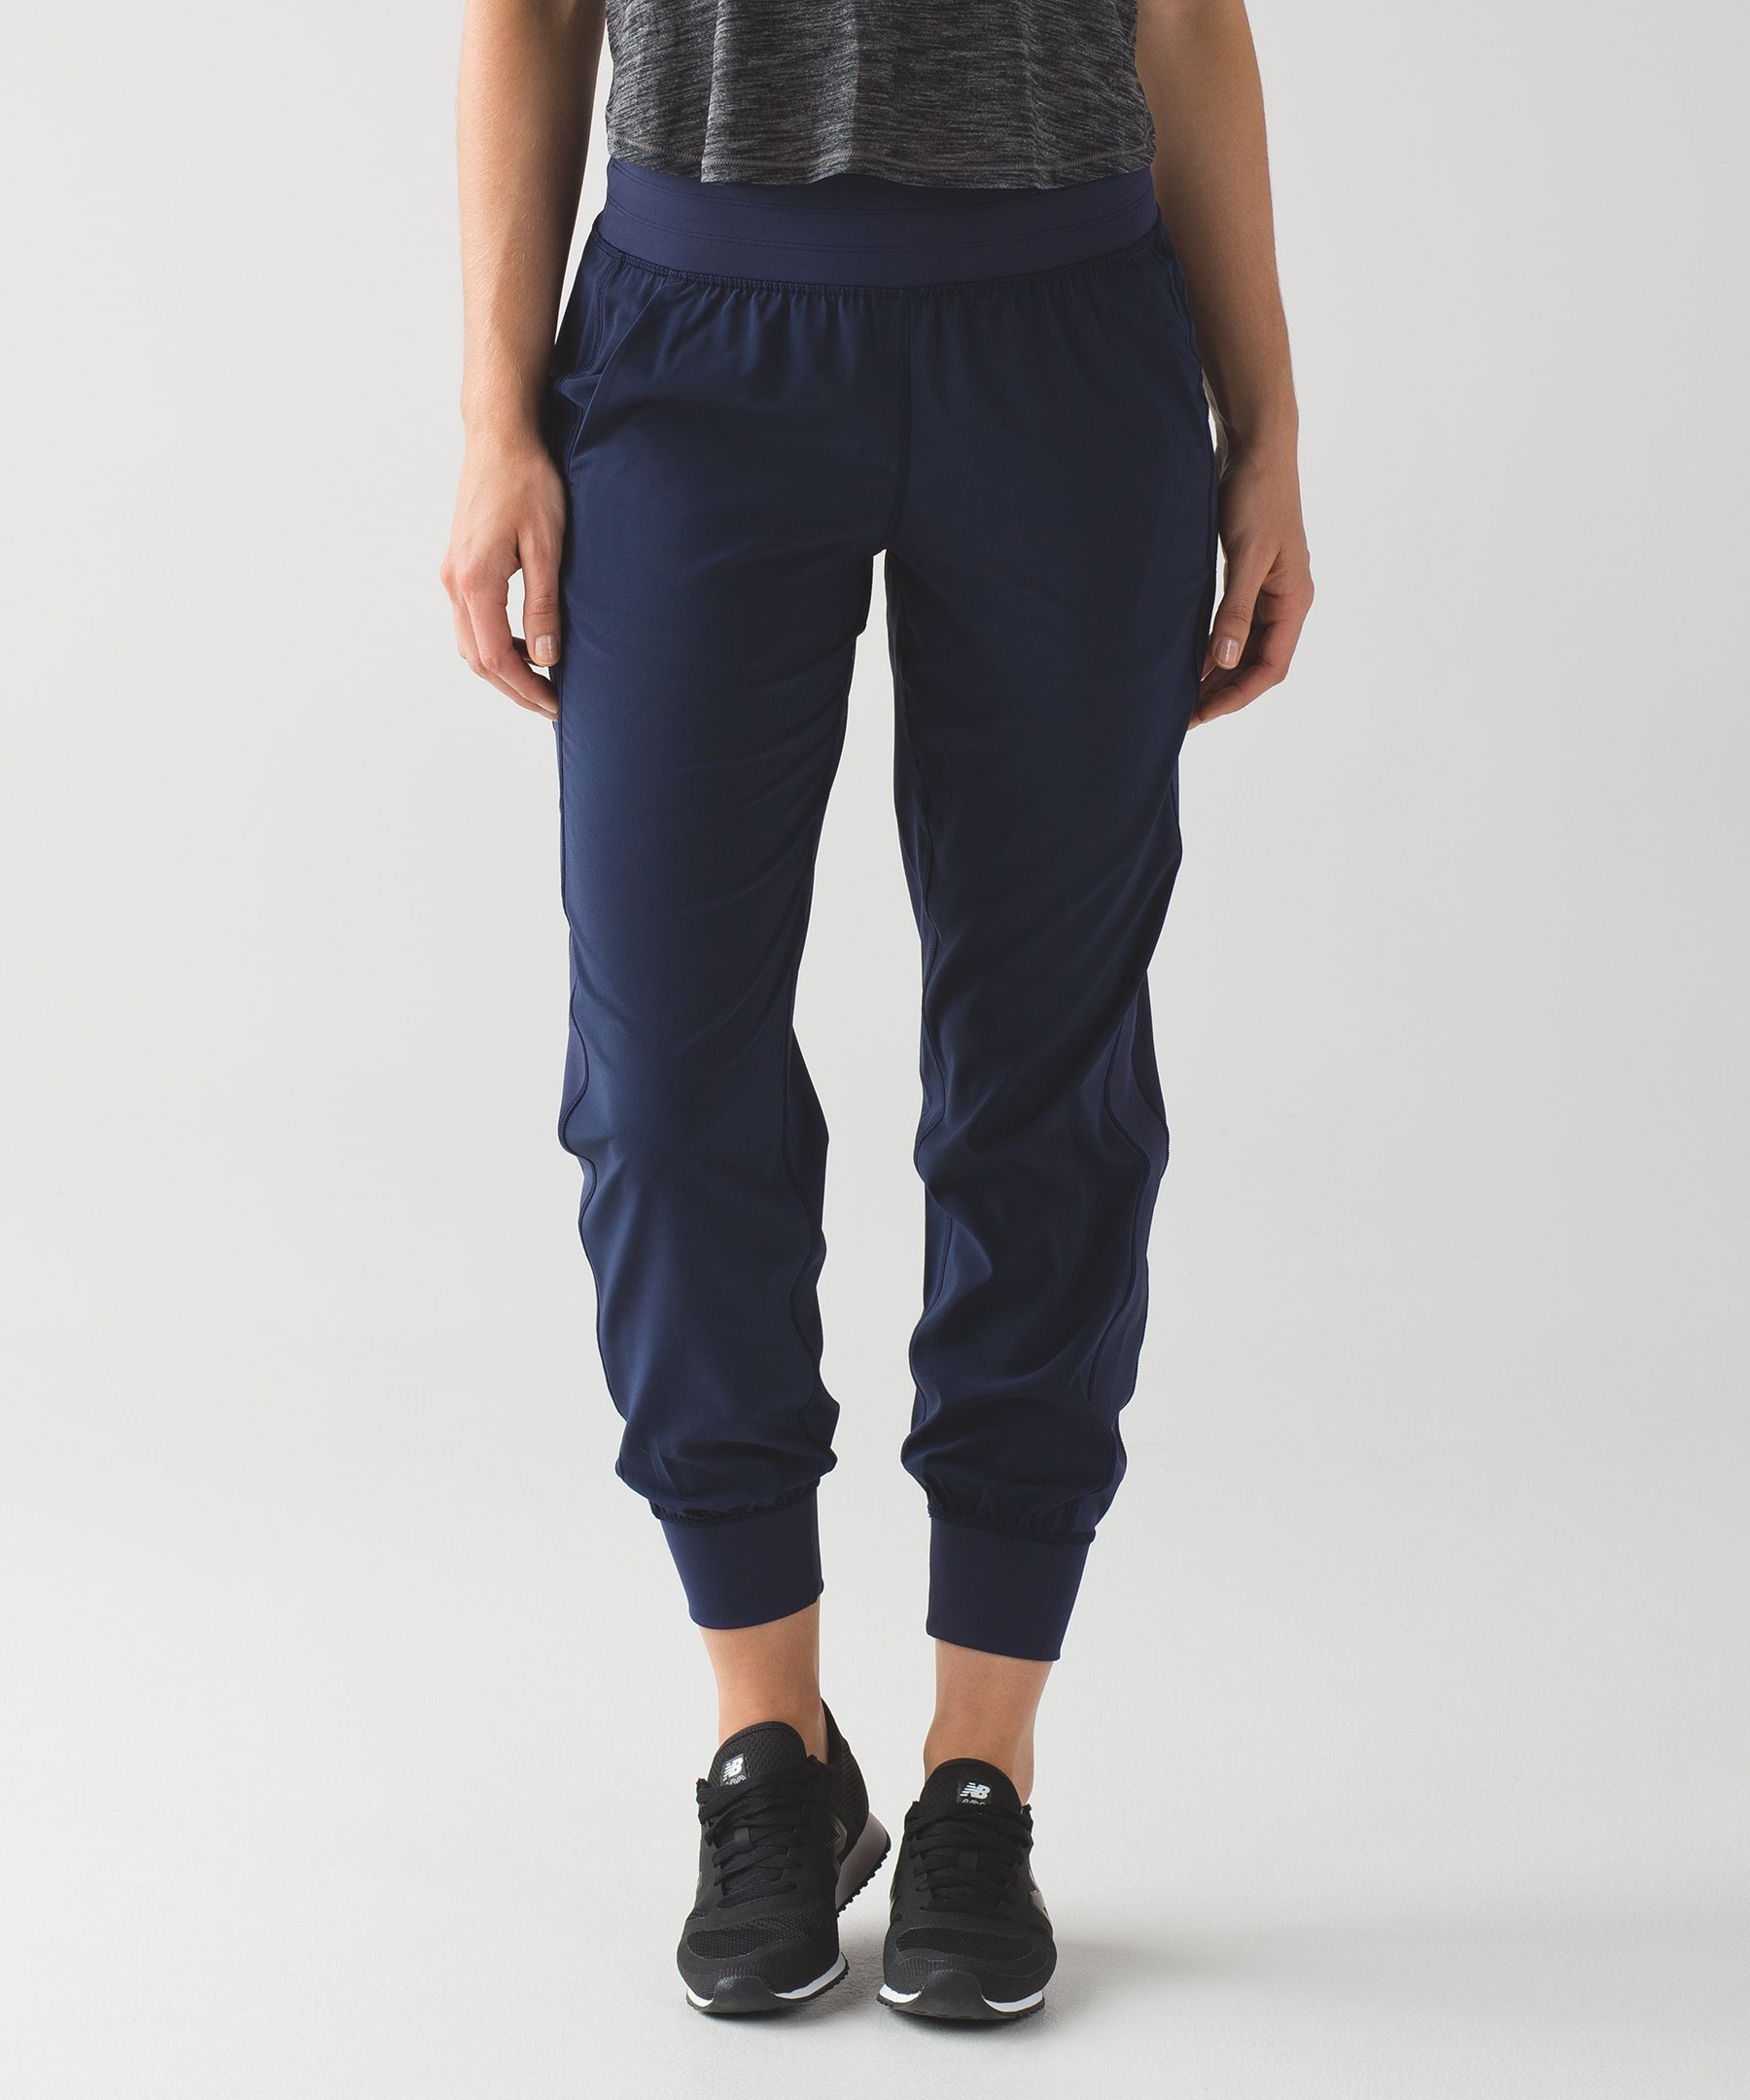 Sweat To Street Jogger Women S Pants Lululemon Athletica